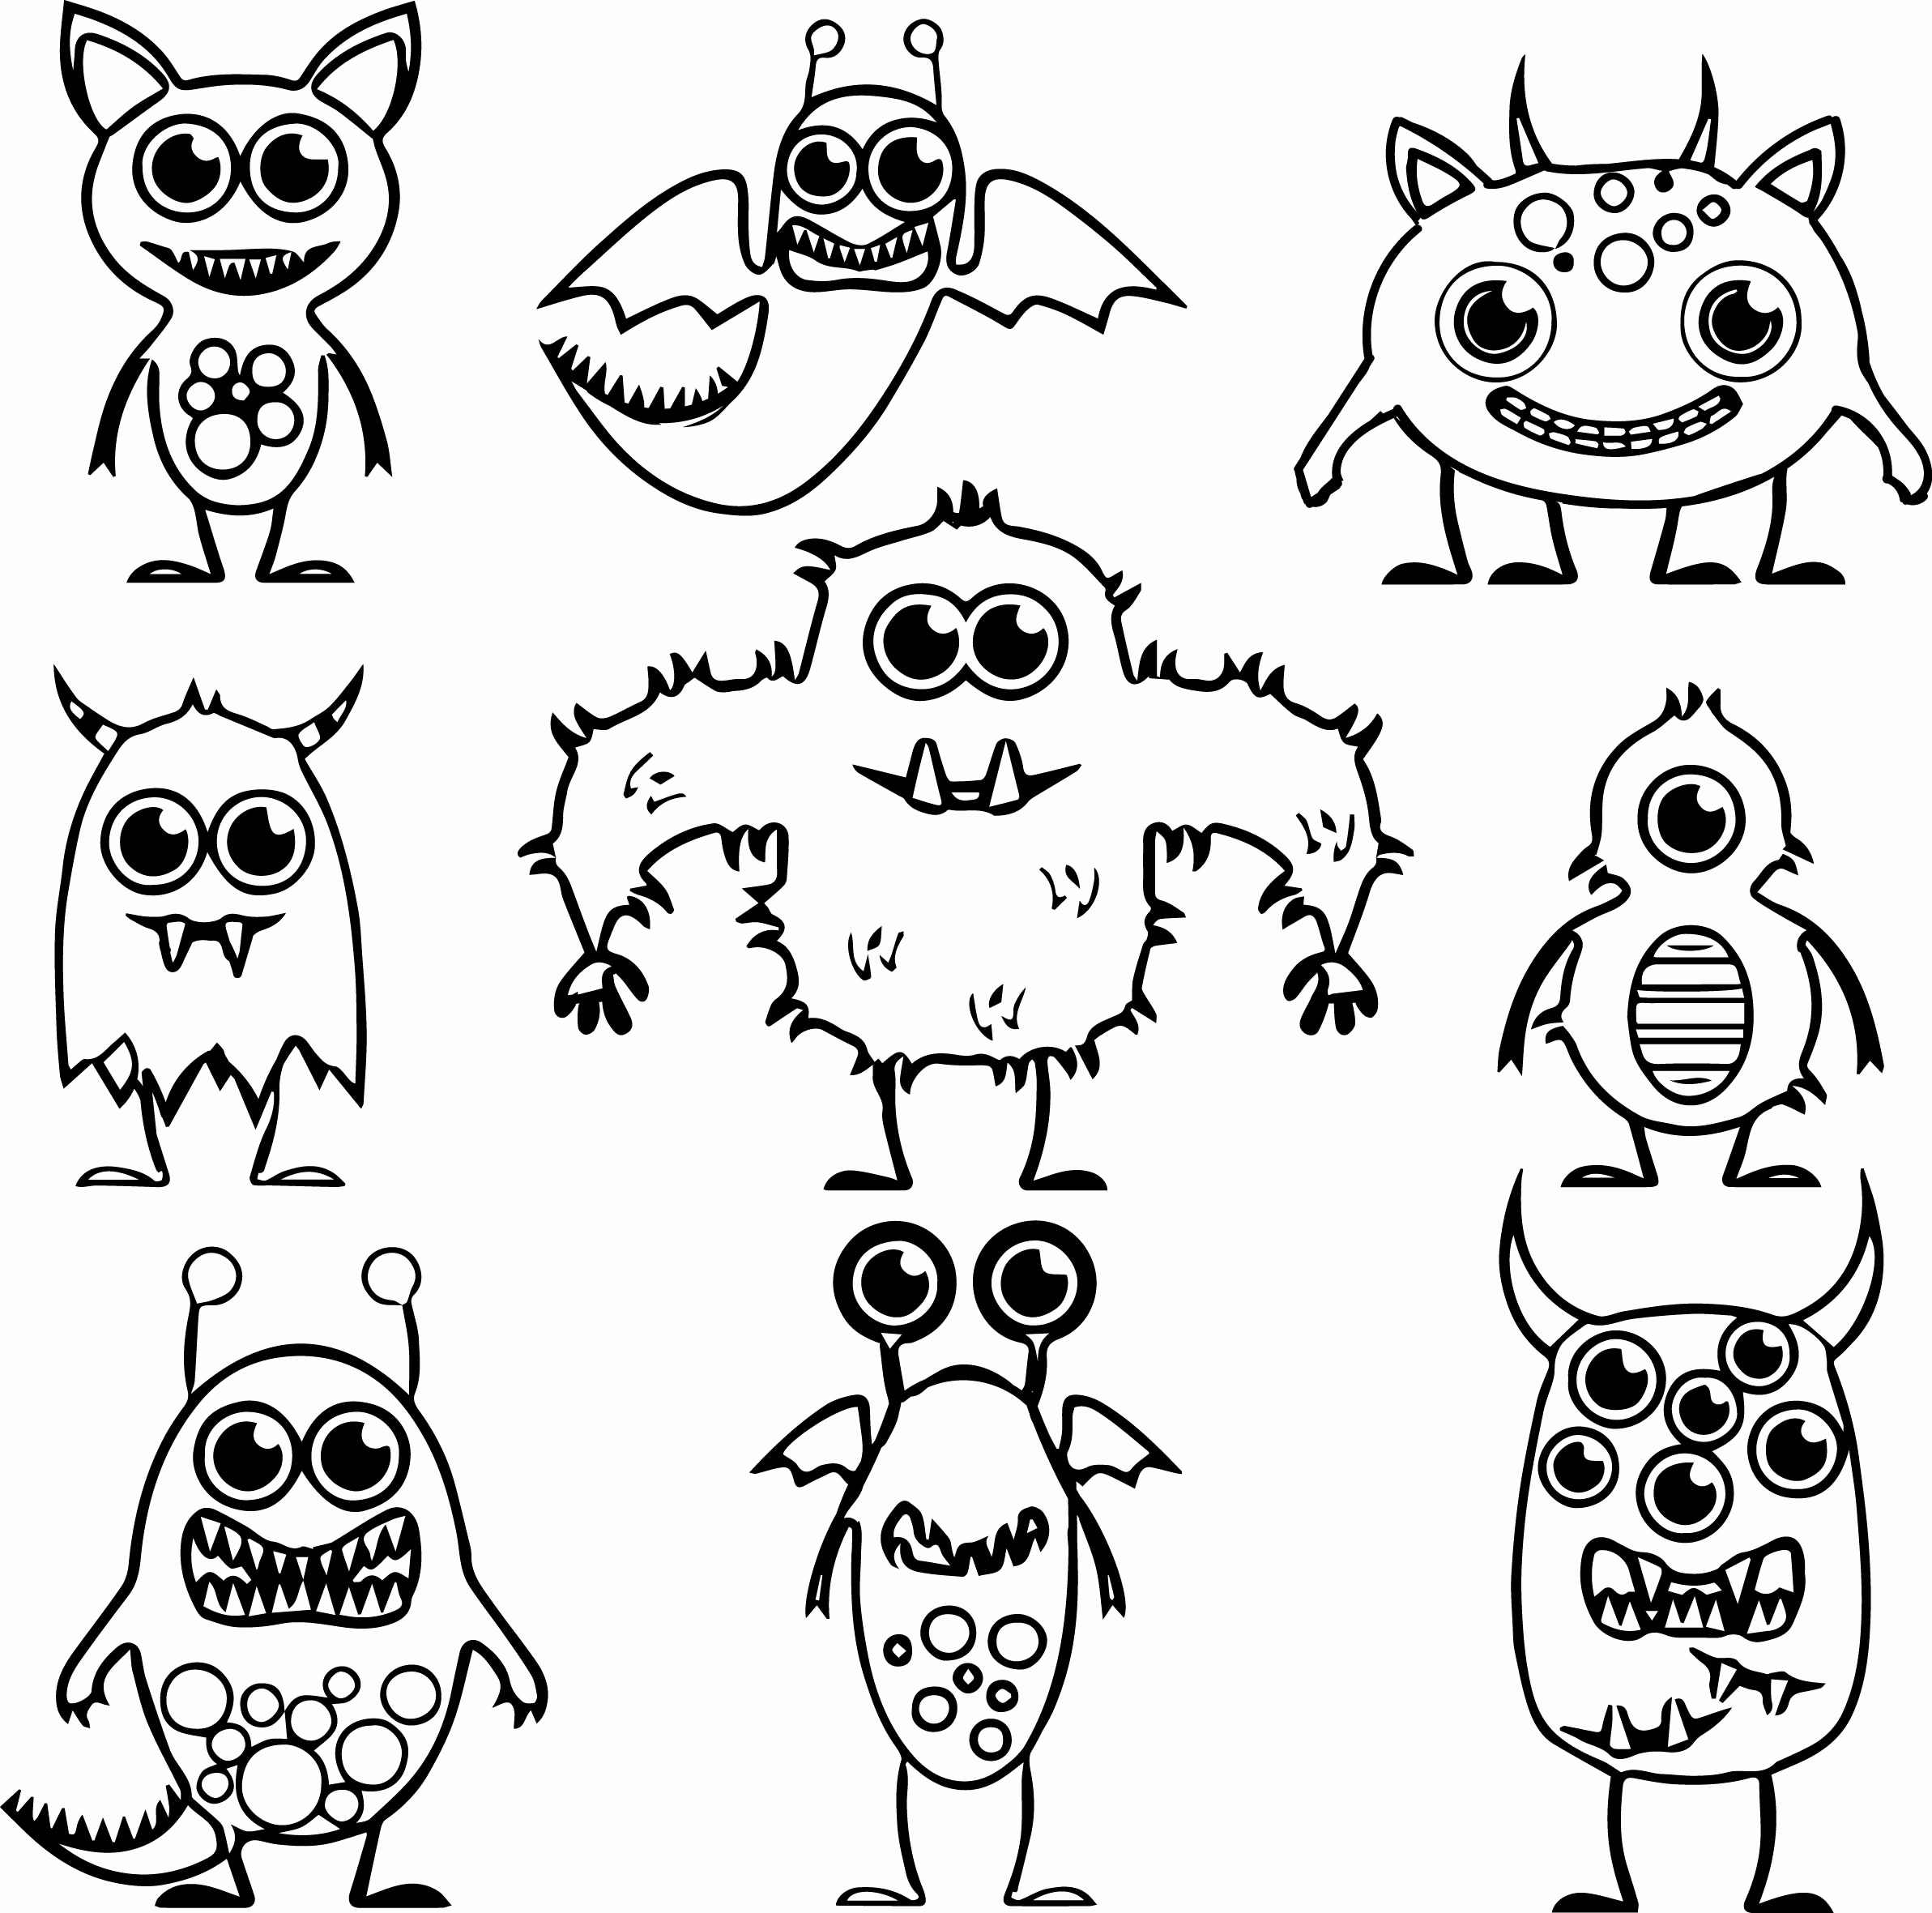 Advanced Online Coloring Pages